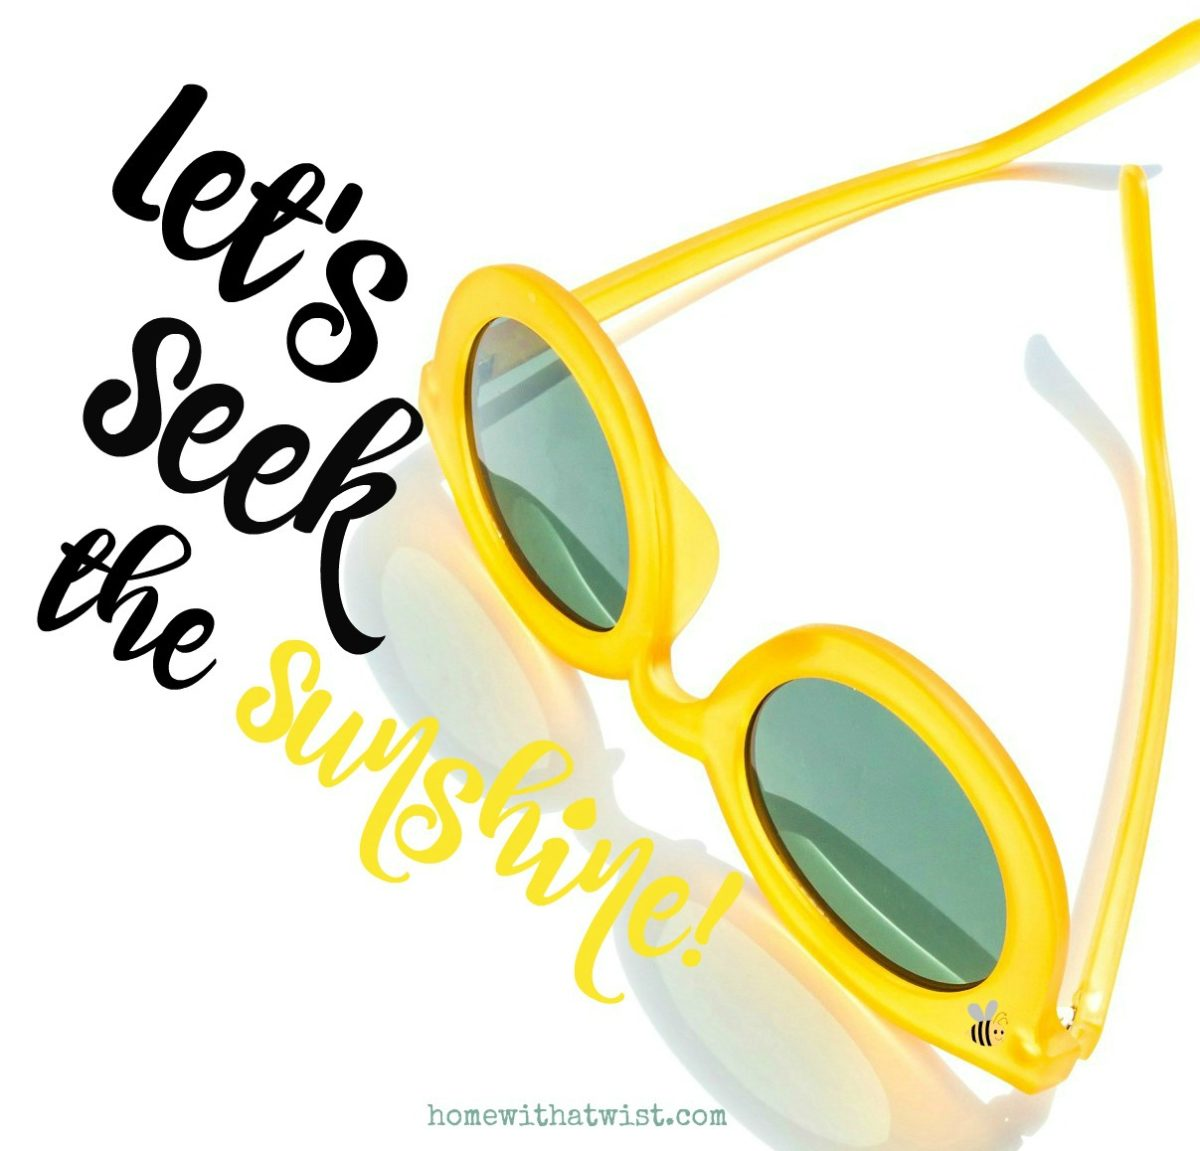 2019 Mantra – Seek My Sunshine!